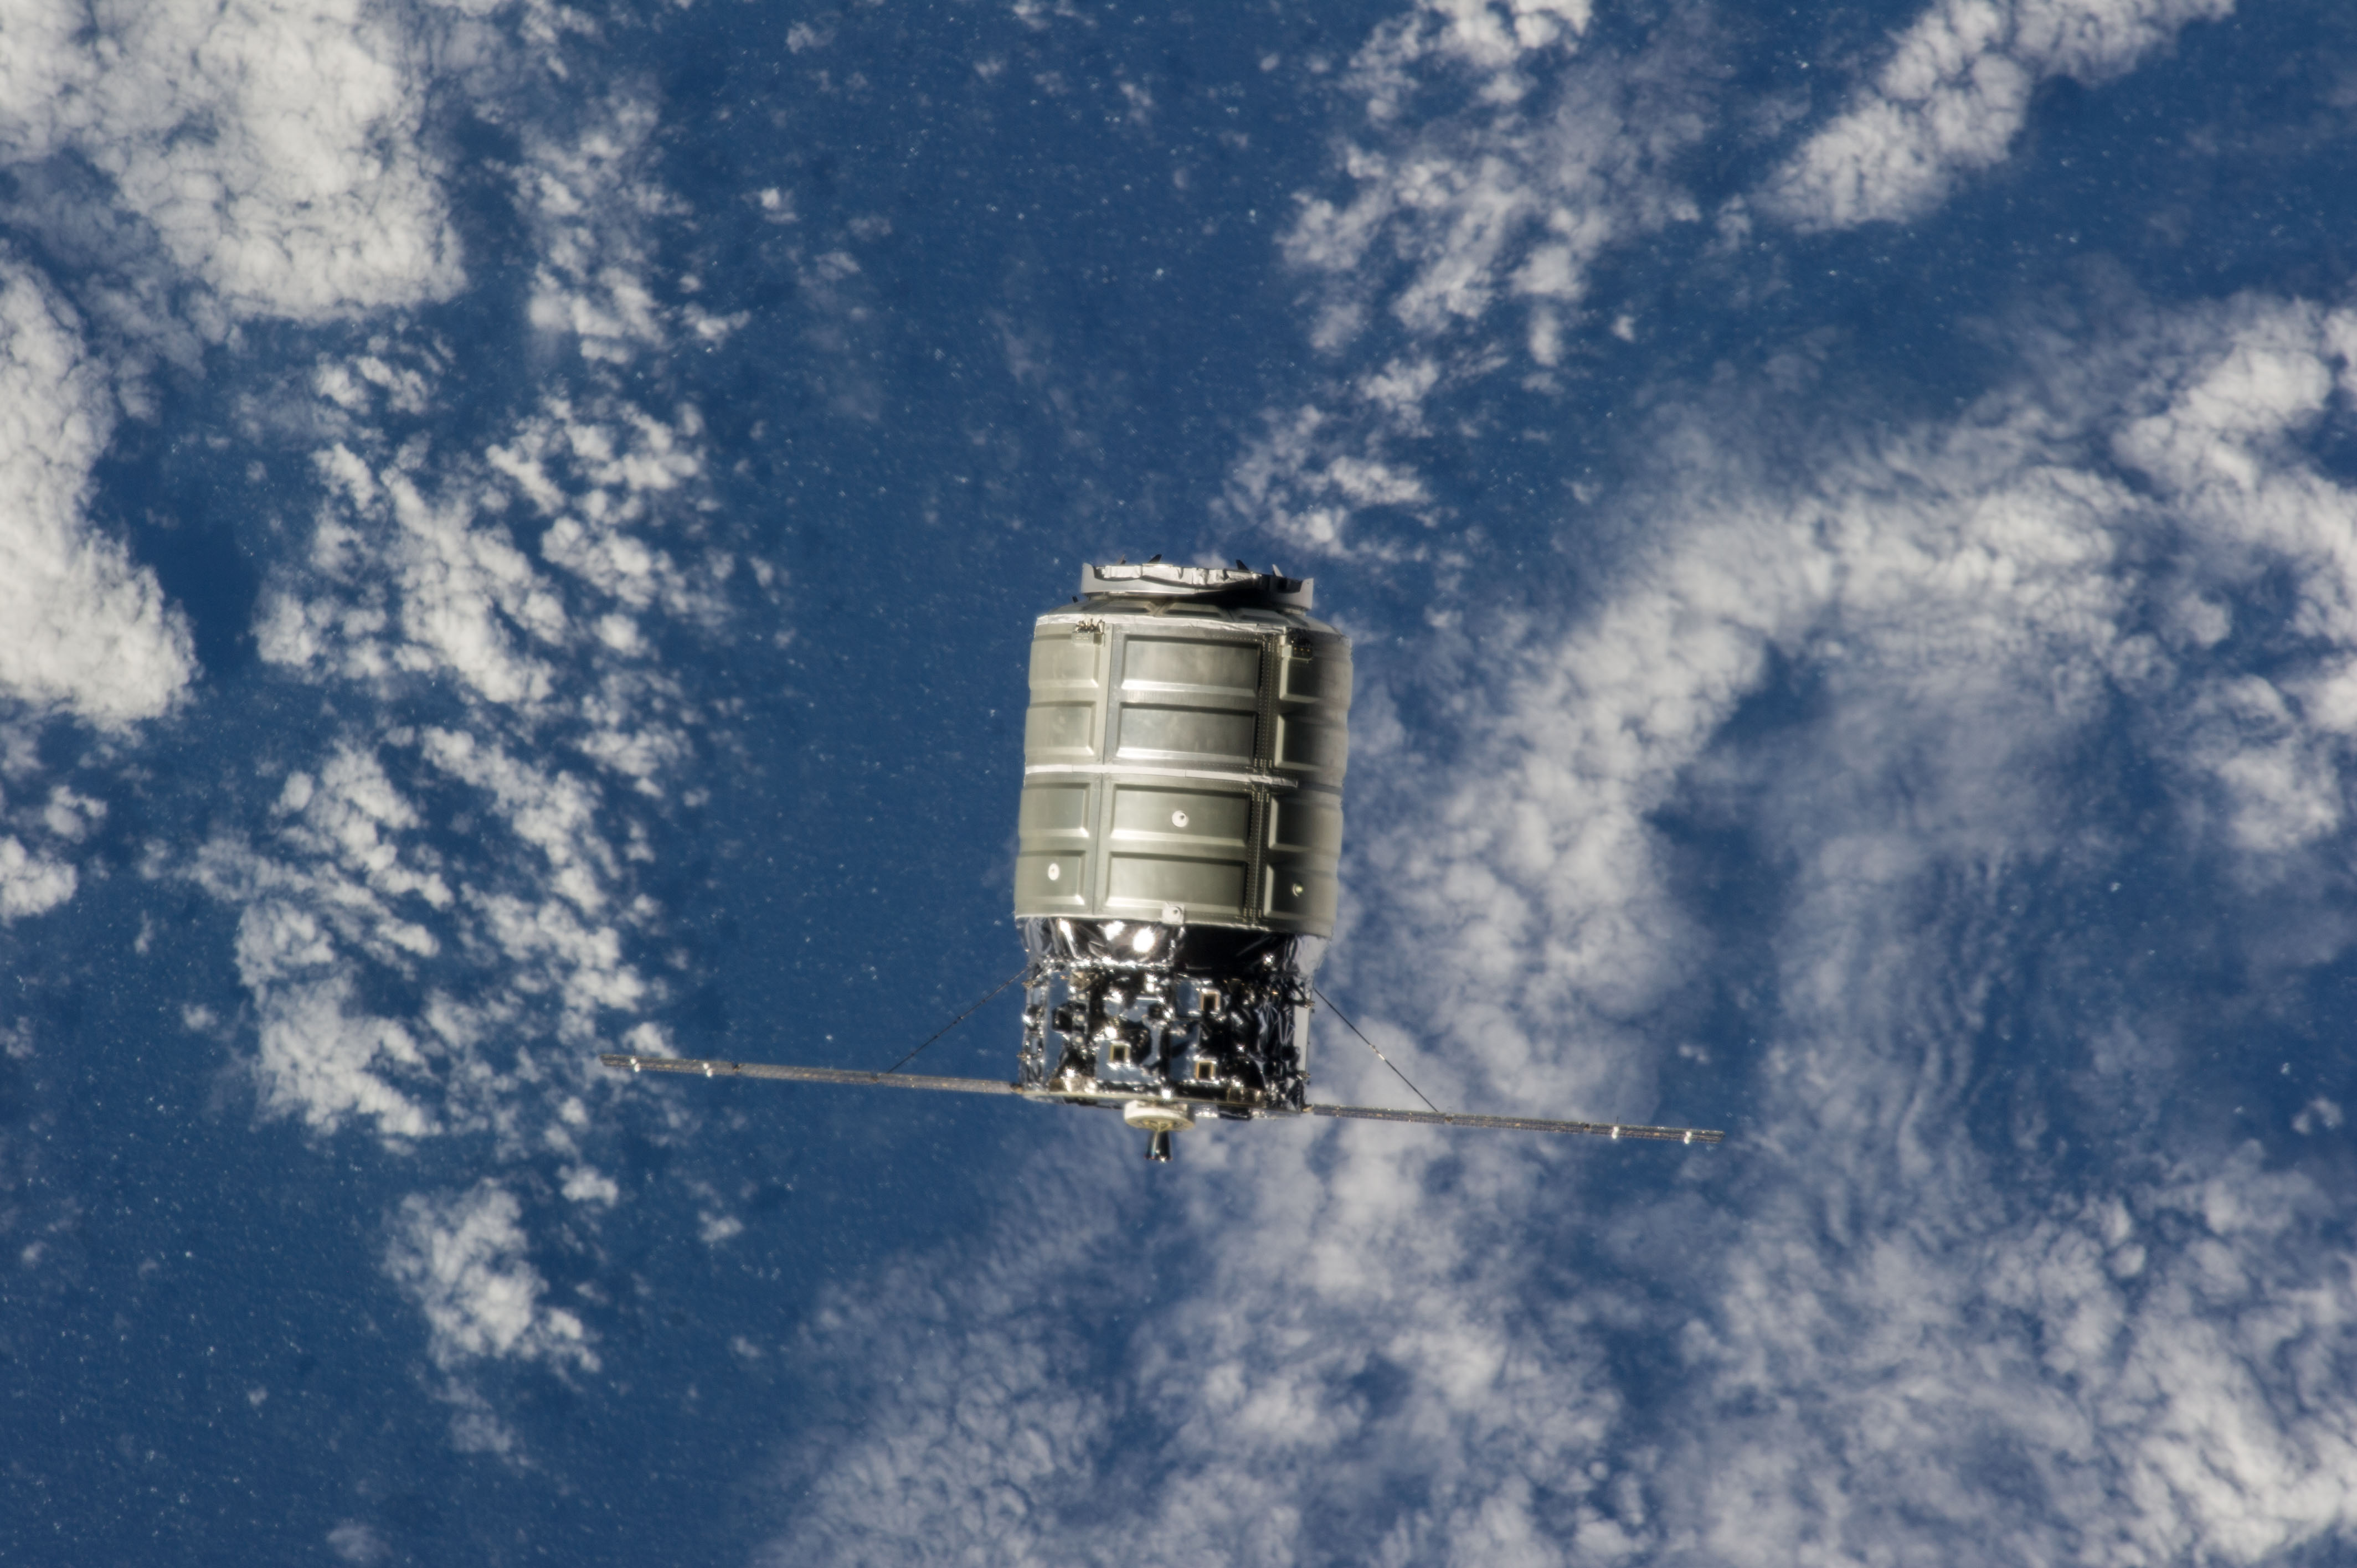 The First Cygnus Commercial Cargo Spacecraft | NASA